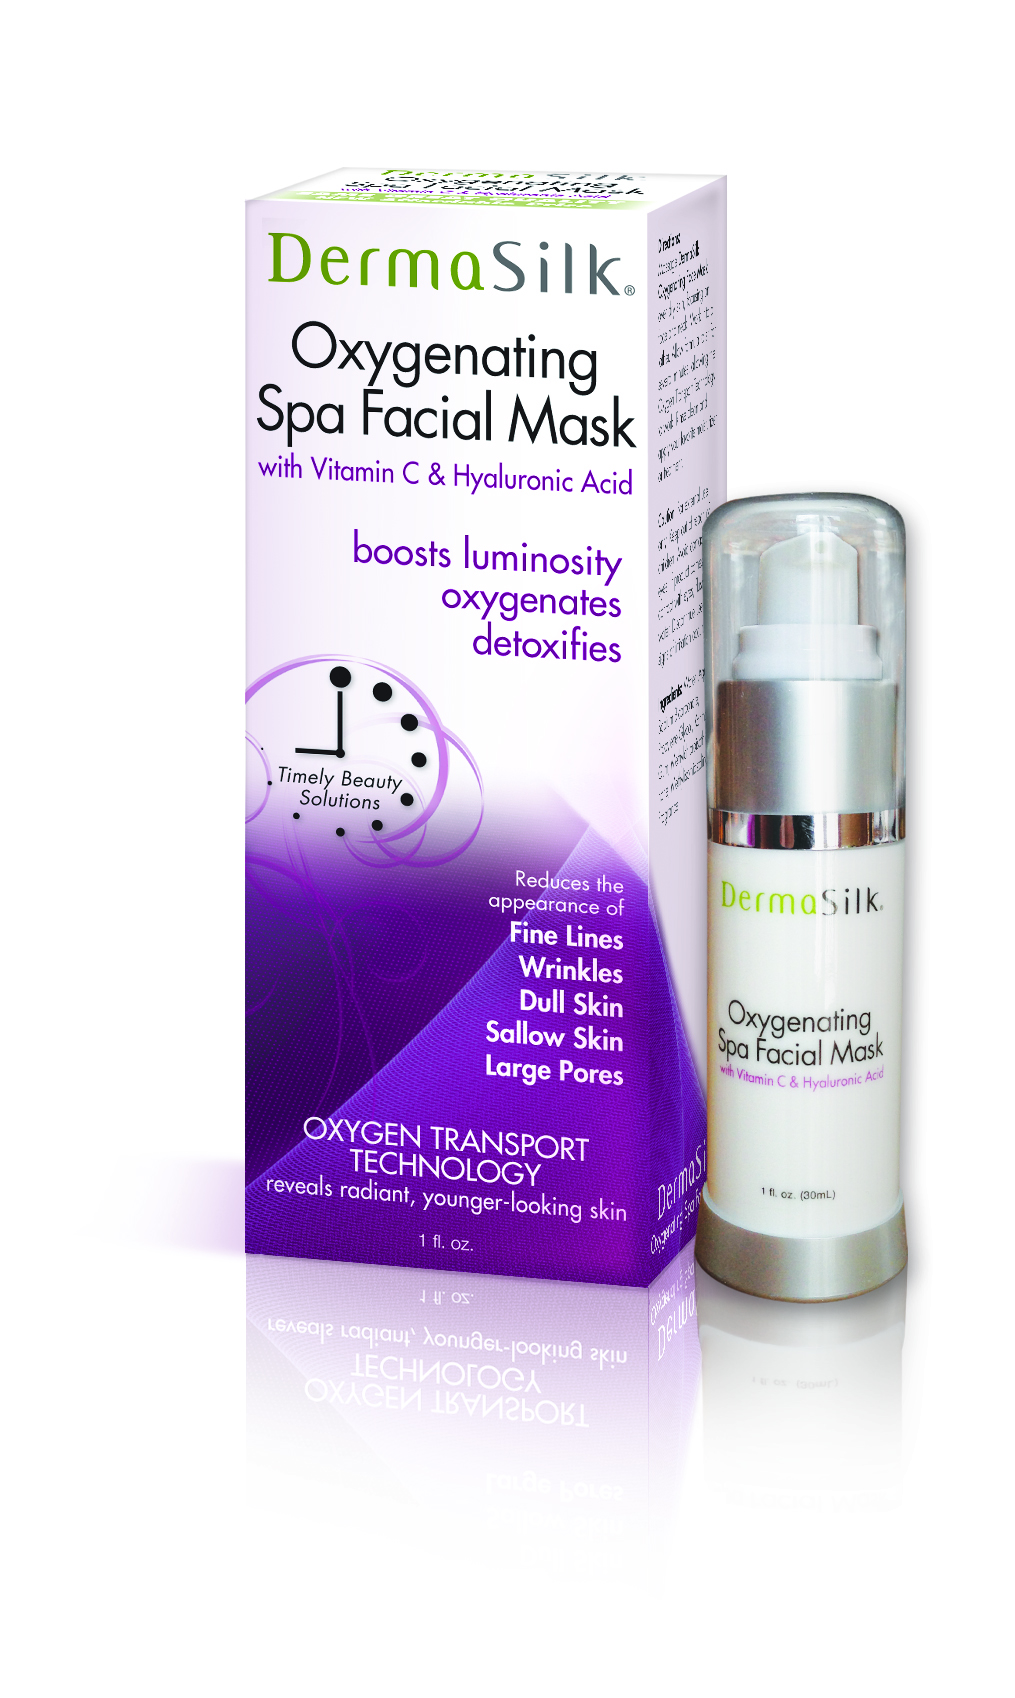 DermaSilk Oxygenating Spa Facial Mask